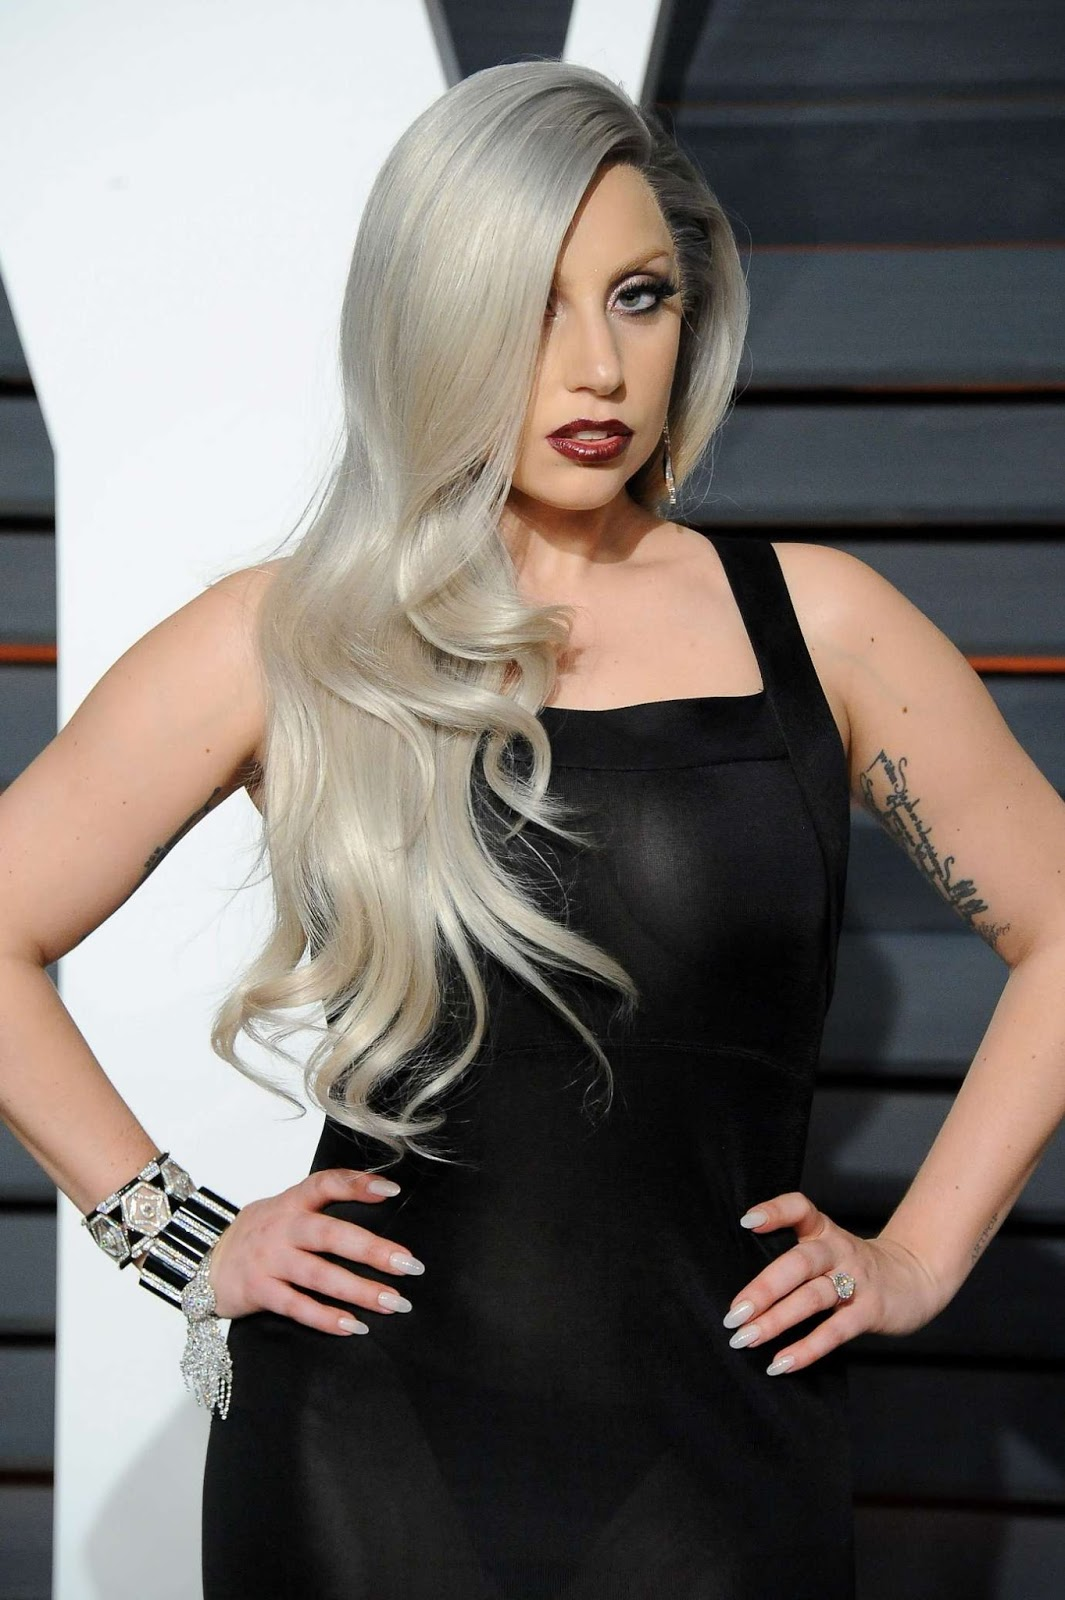 "E.I.U.M.T. Booking ""Lady Gaga"" per Management Lady Gaga"